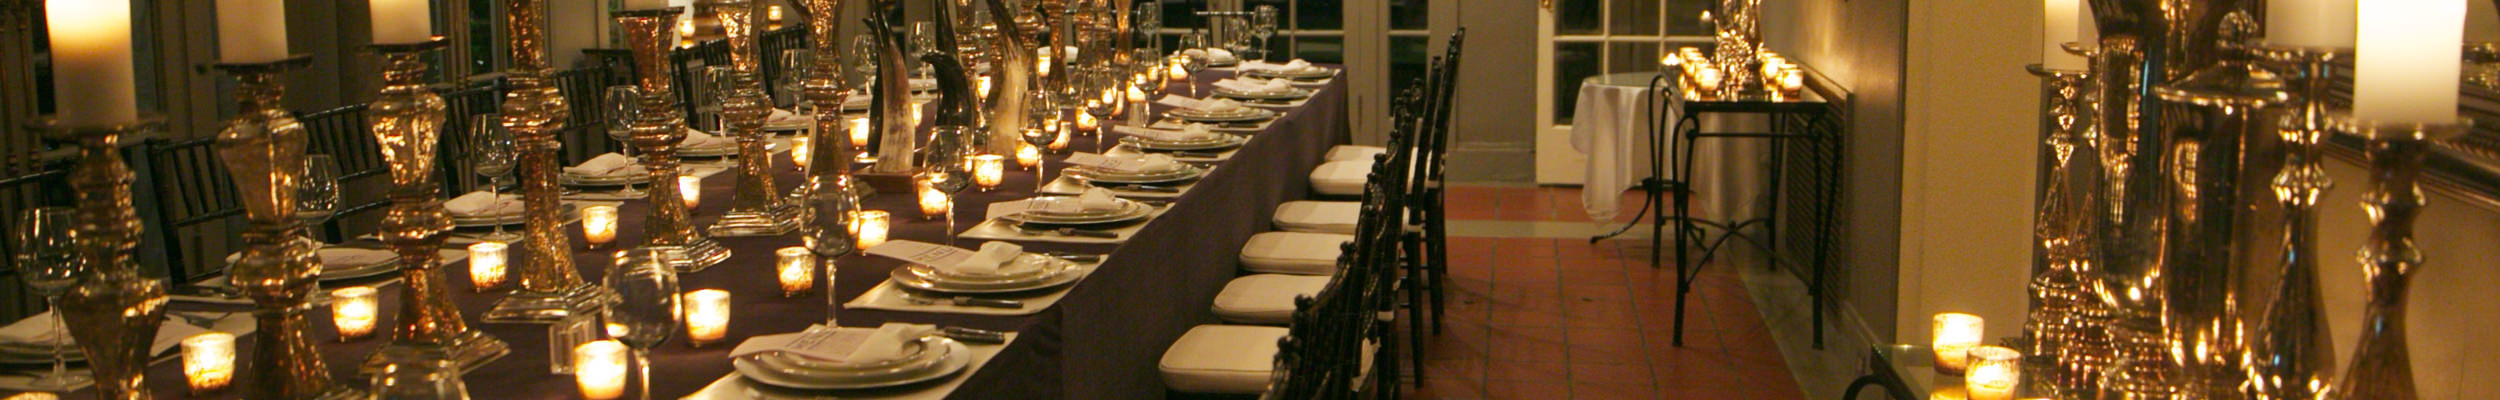 Exclusive Dinner Party - Liberty Event Rentals